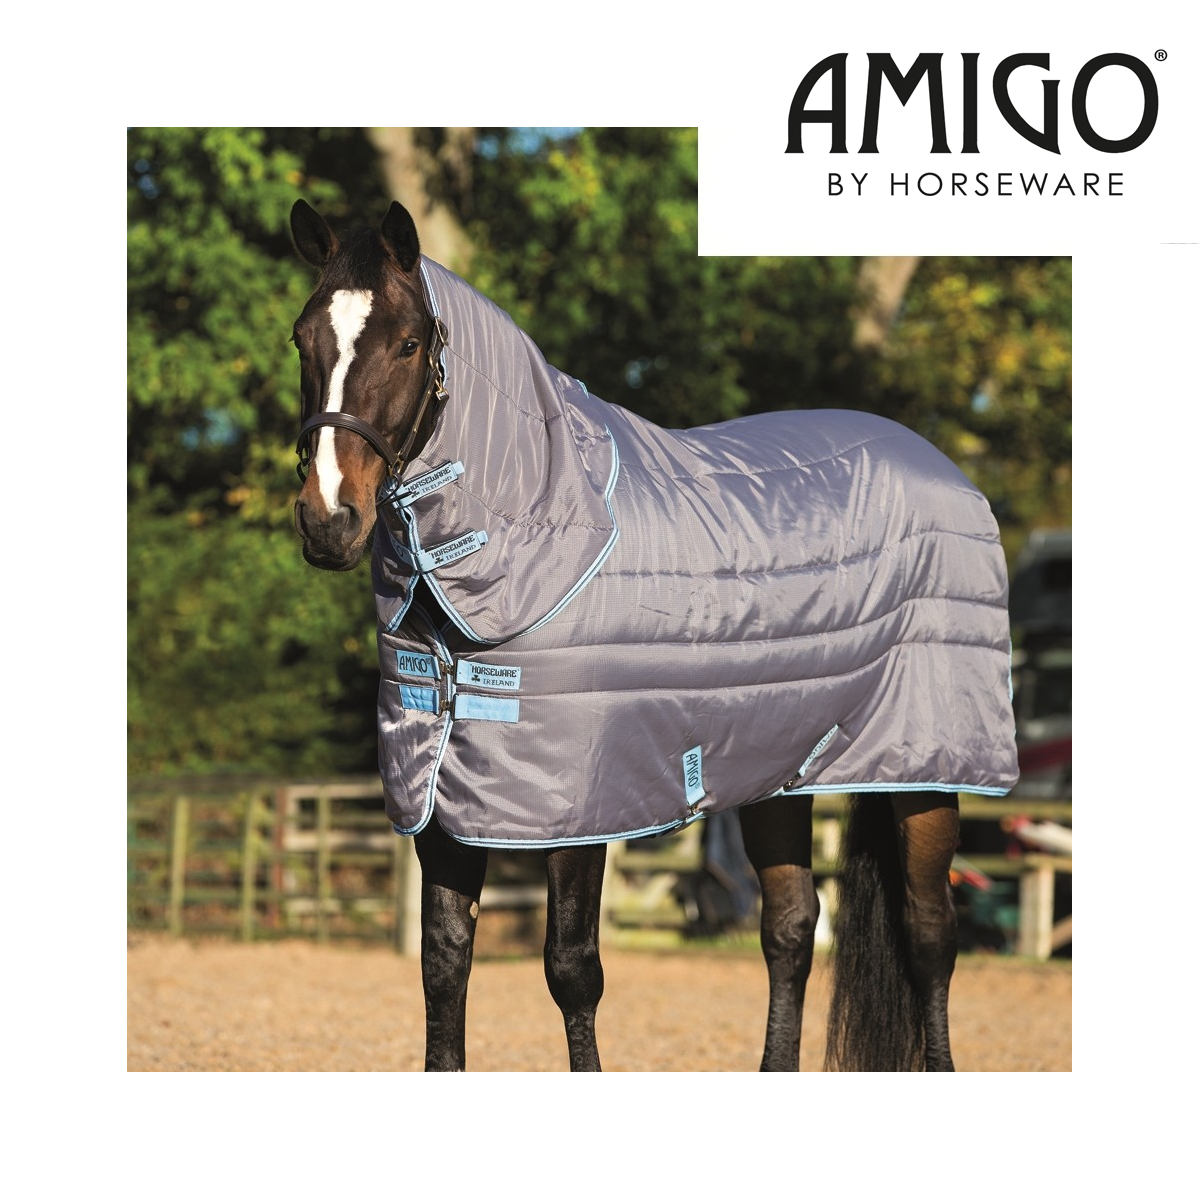 Horseware Amigo XL Insulator Plus Mediumweight Stable Rug (200g) - Light Grau/Bl